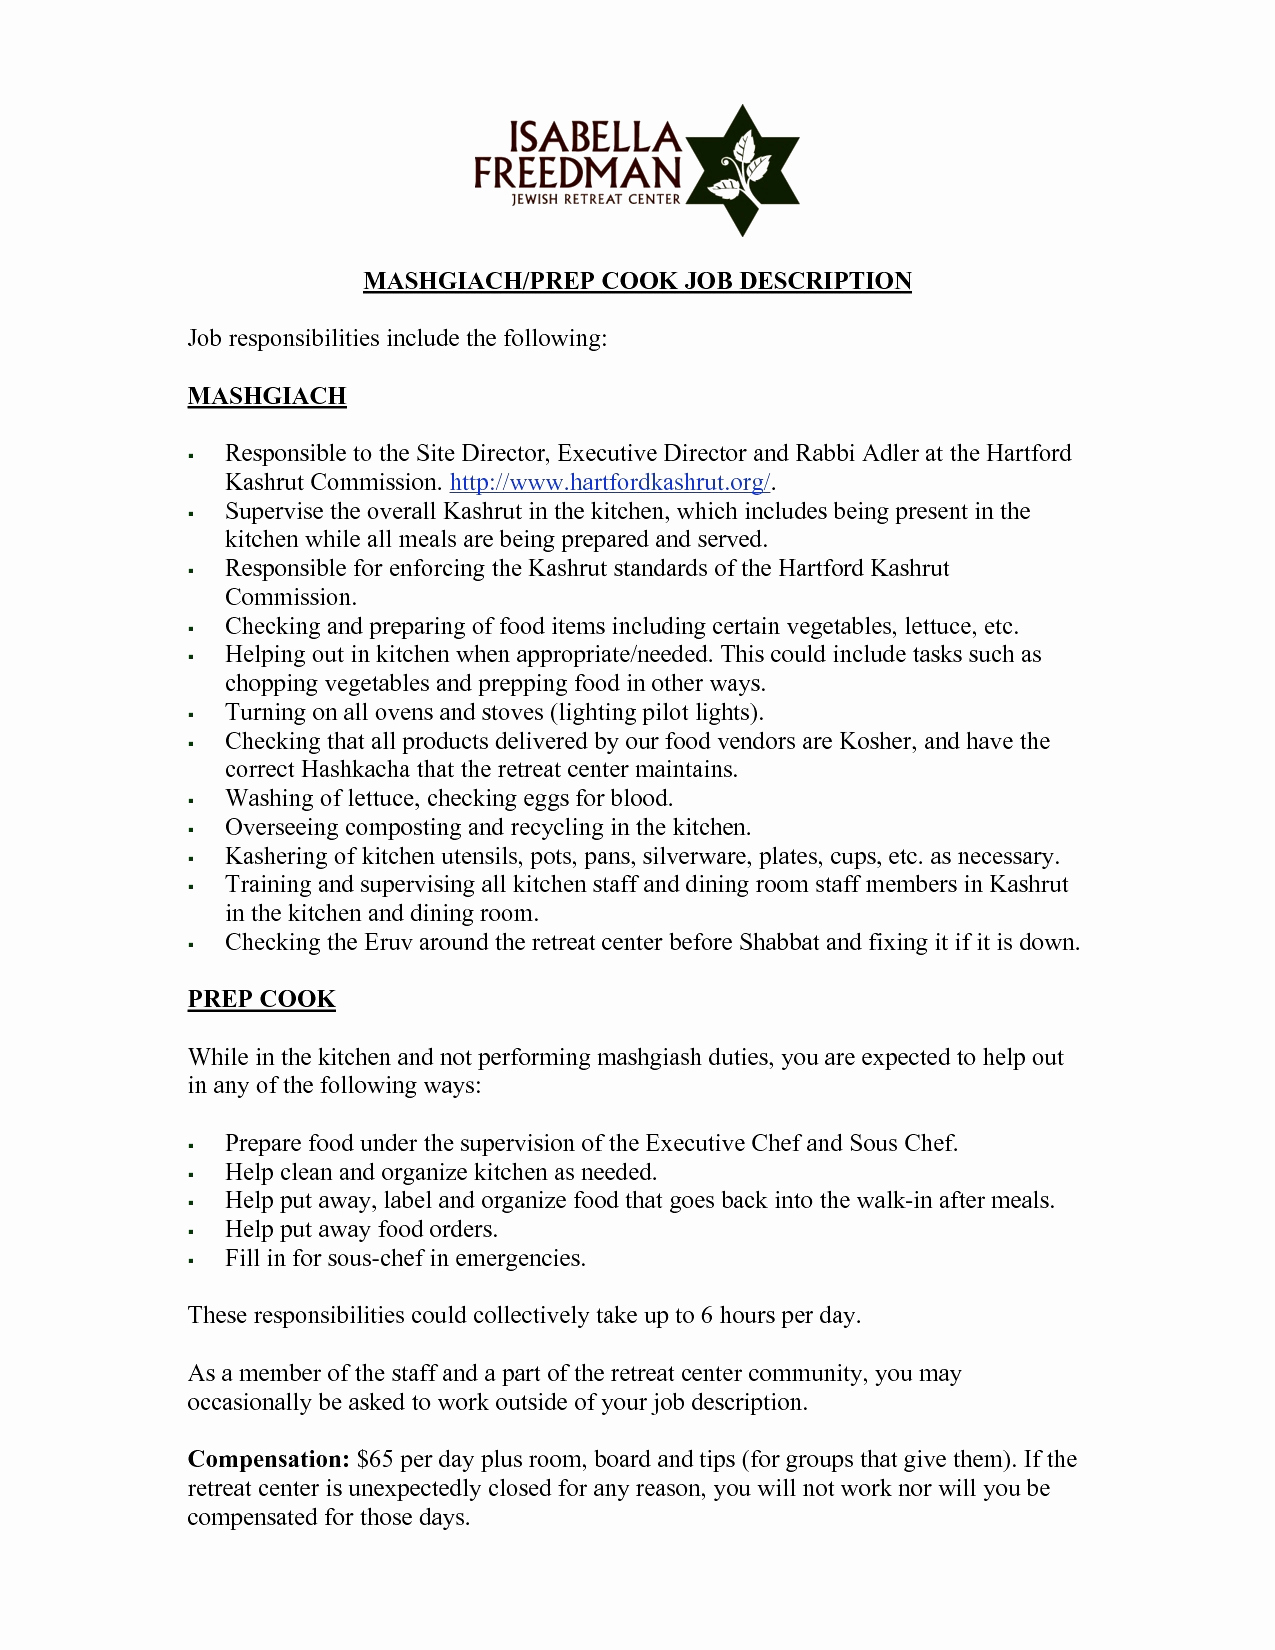 registered nurse cover letter template example-Registered Nurse Cover Letter Examples New Resume and Cover Letter Template Fresh Od Specialist Sample Resume 2-d